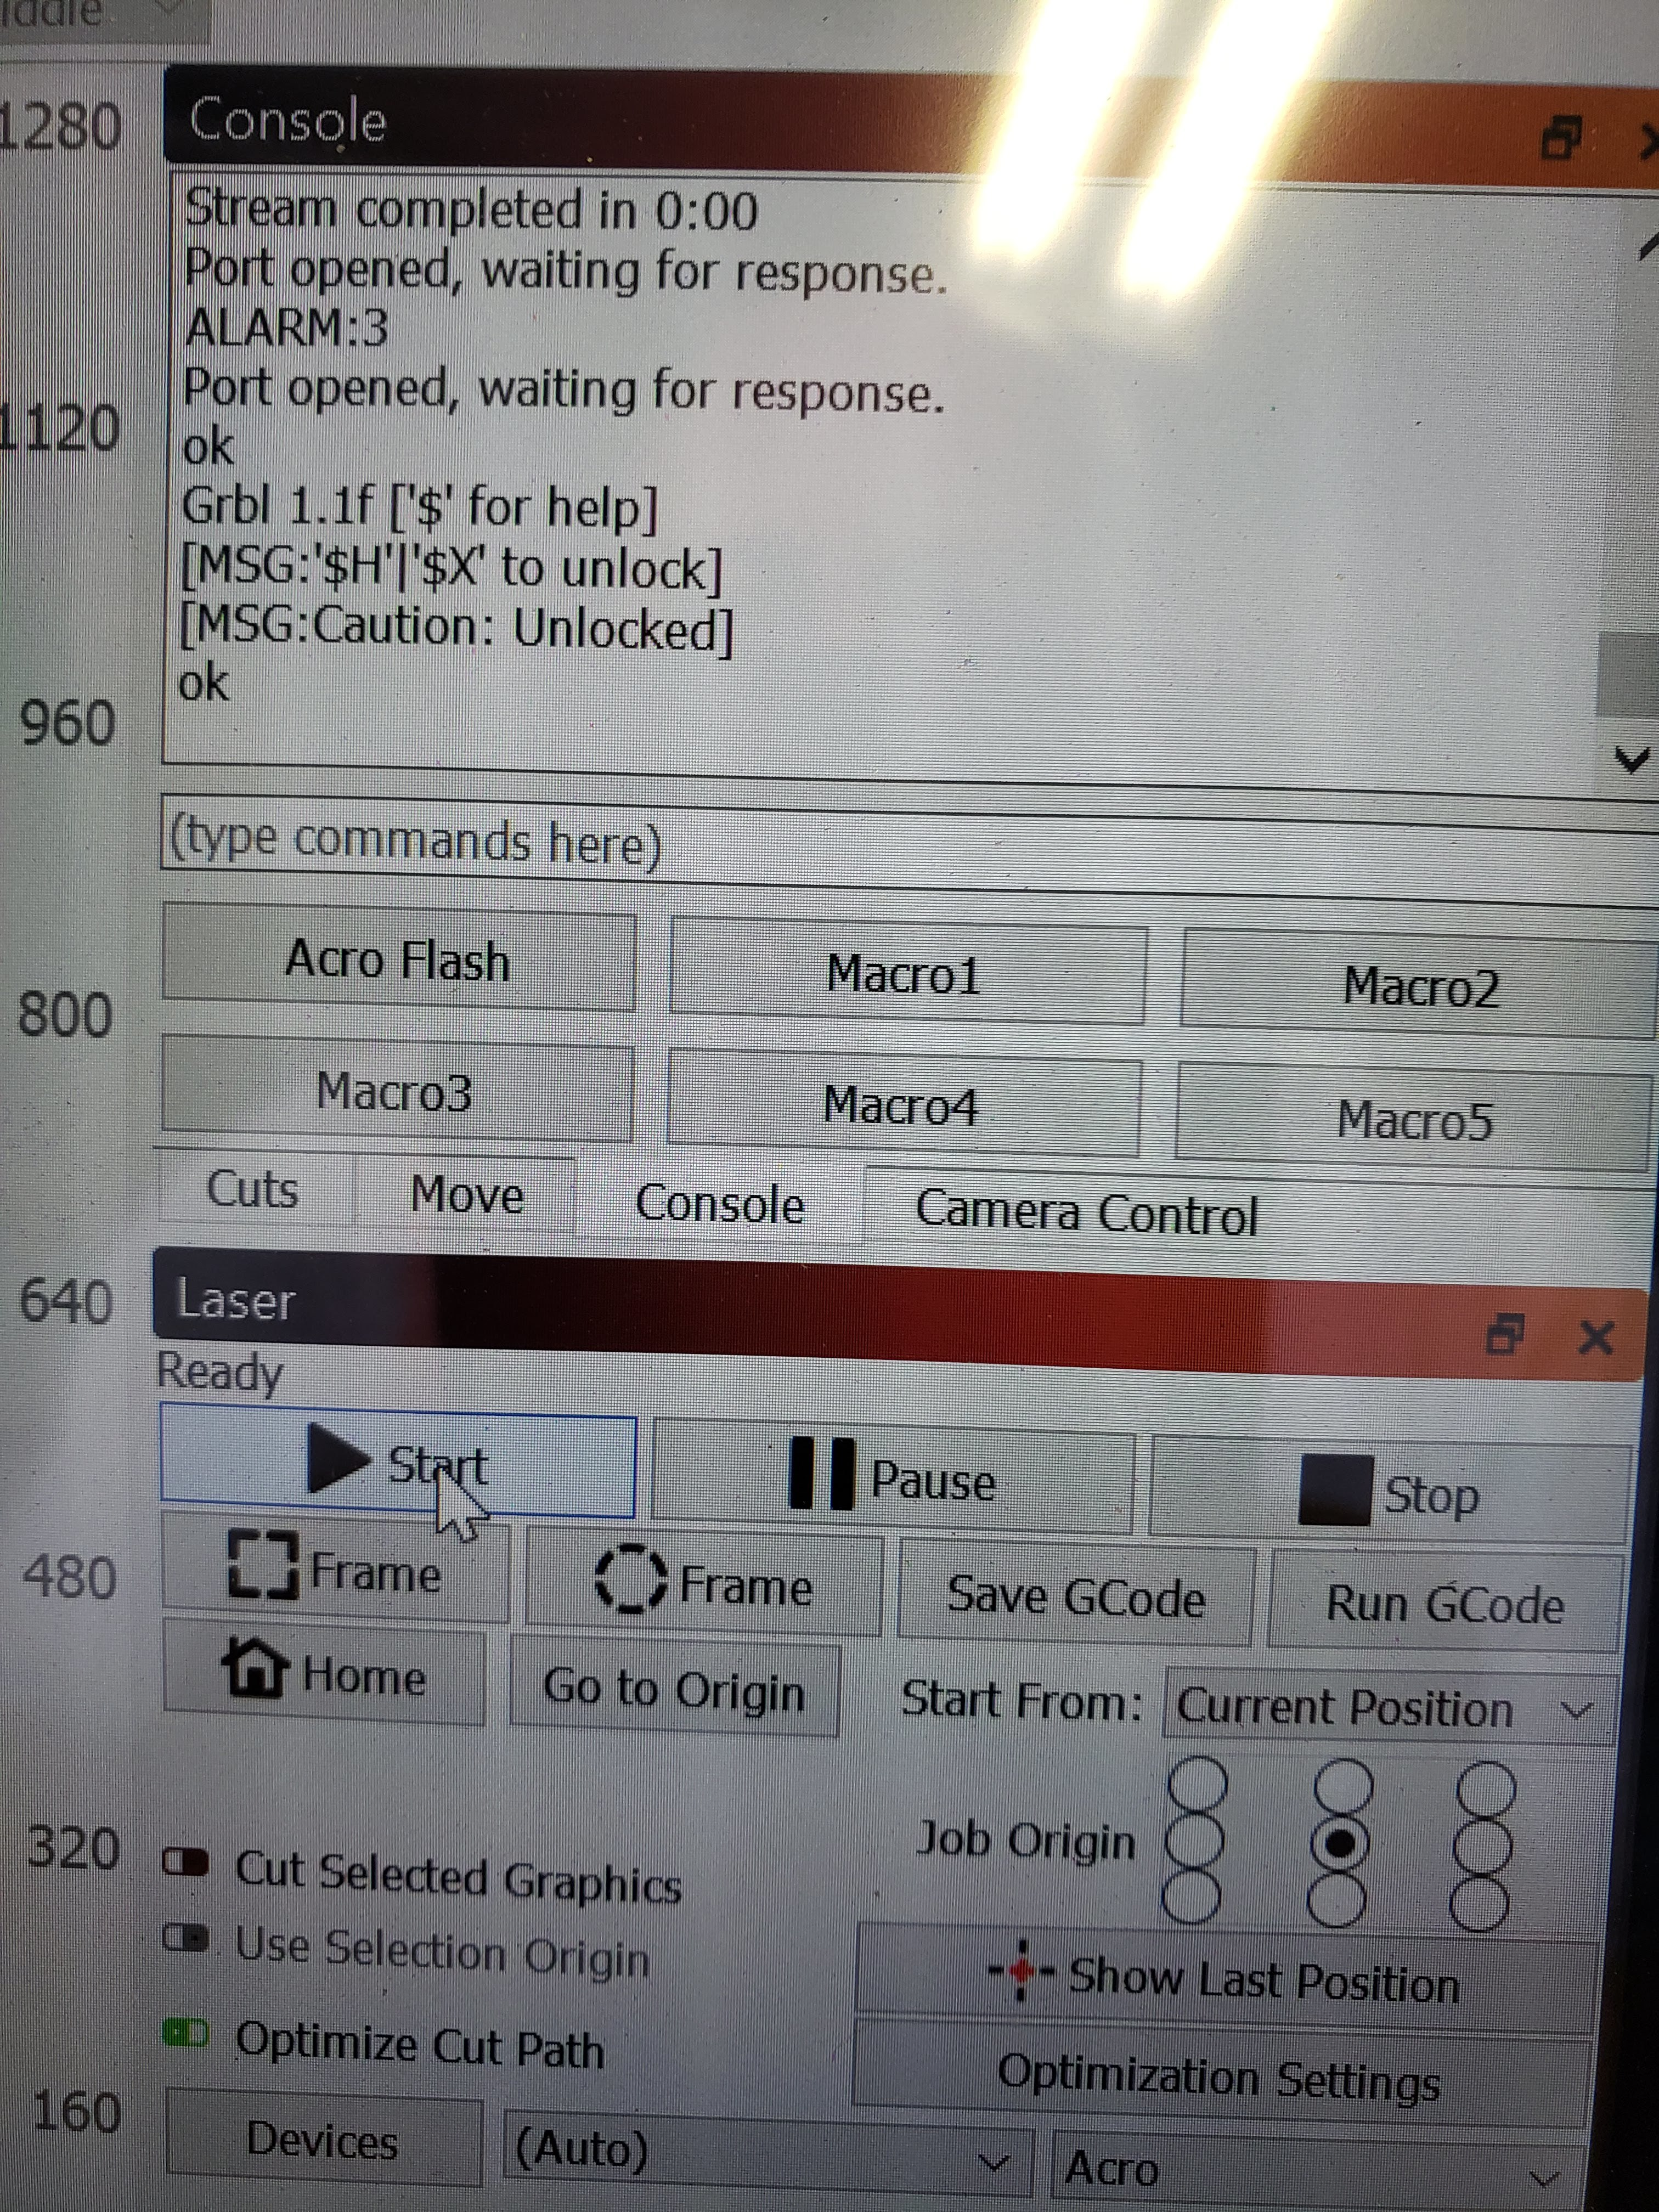 Alarm 3 in Lightburn in the middle of job - Board Configuration and